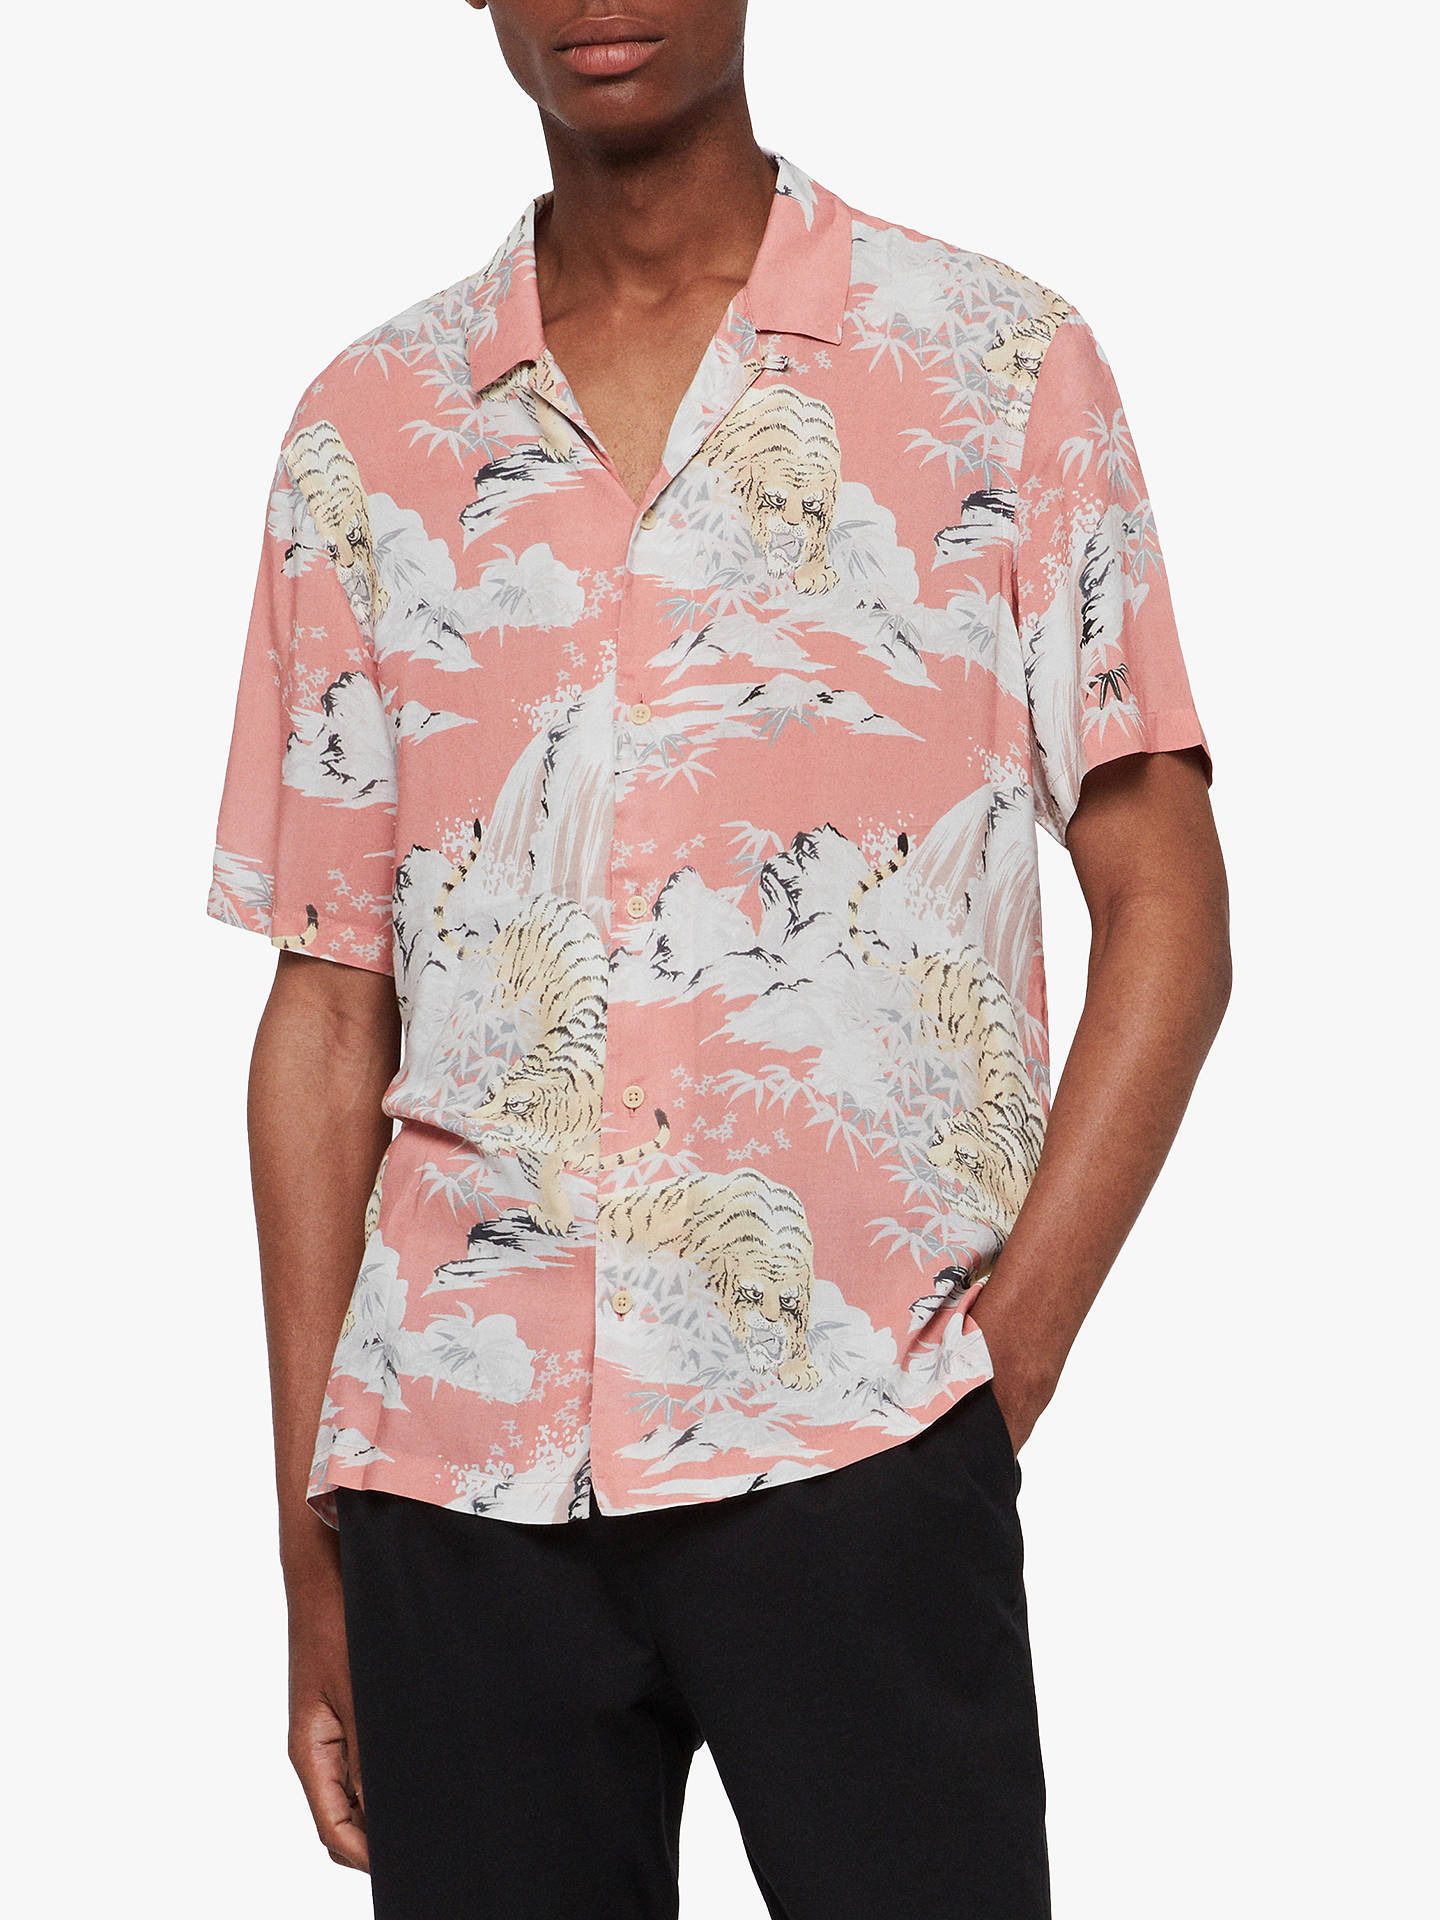 9060b0a4a Buy AllSaints Borneo Japanese Tiger Short Sleeve Shirt, Pink, XS Online at  johnlewis.